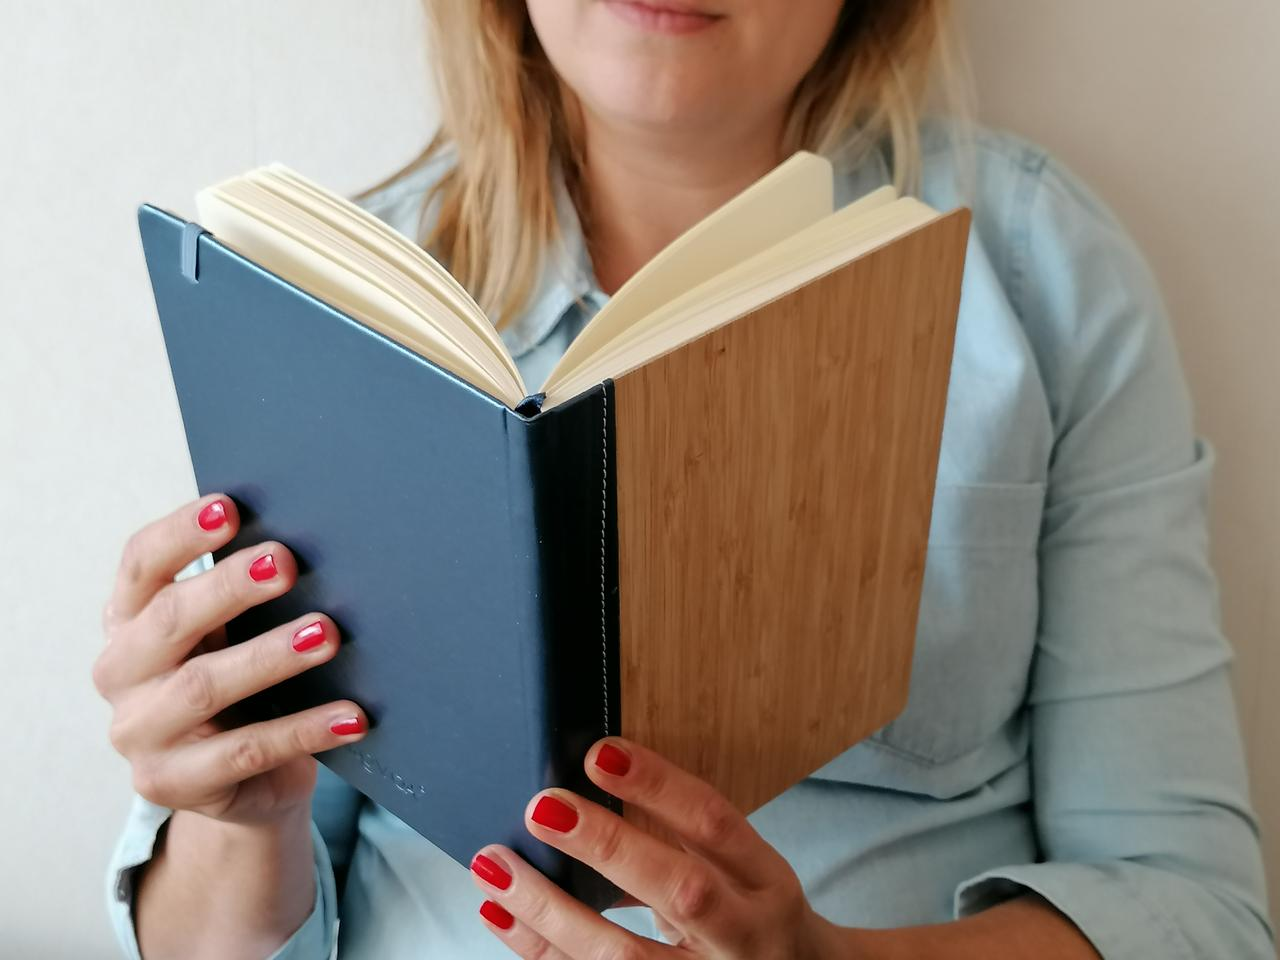 TheGVA Notebook is entirely made of sustainable materials